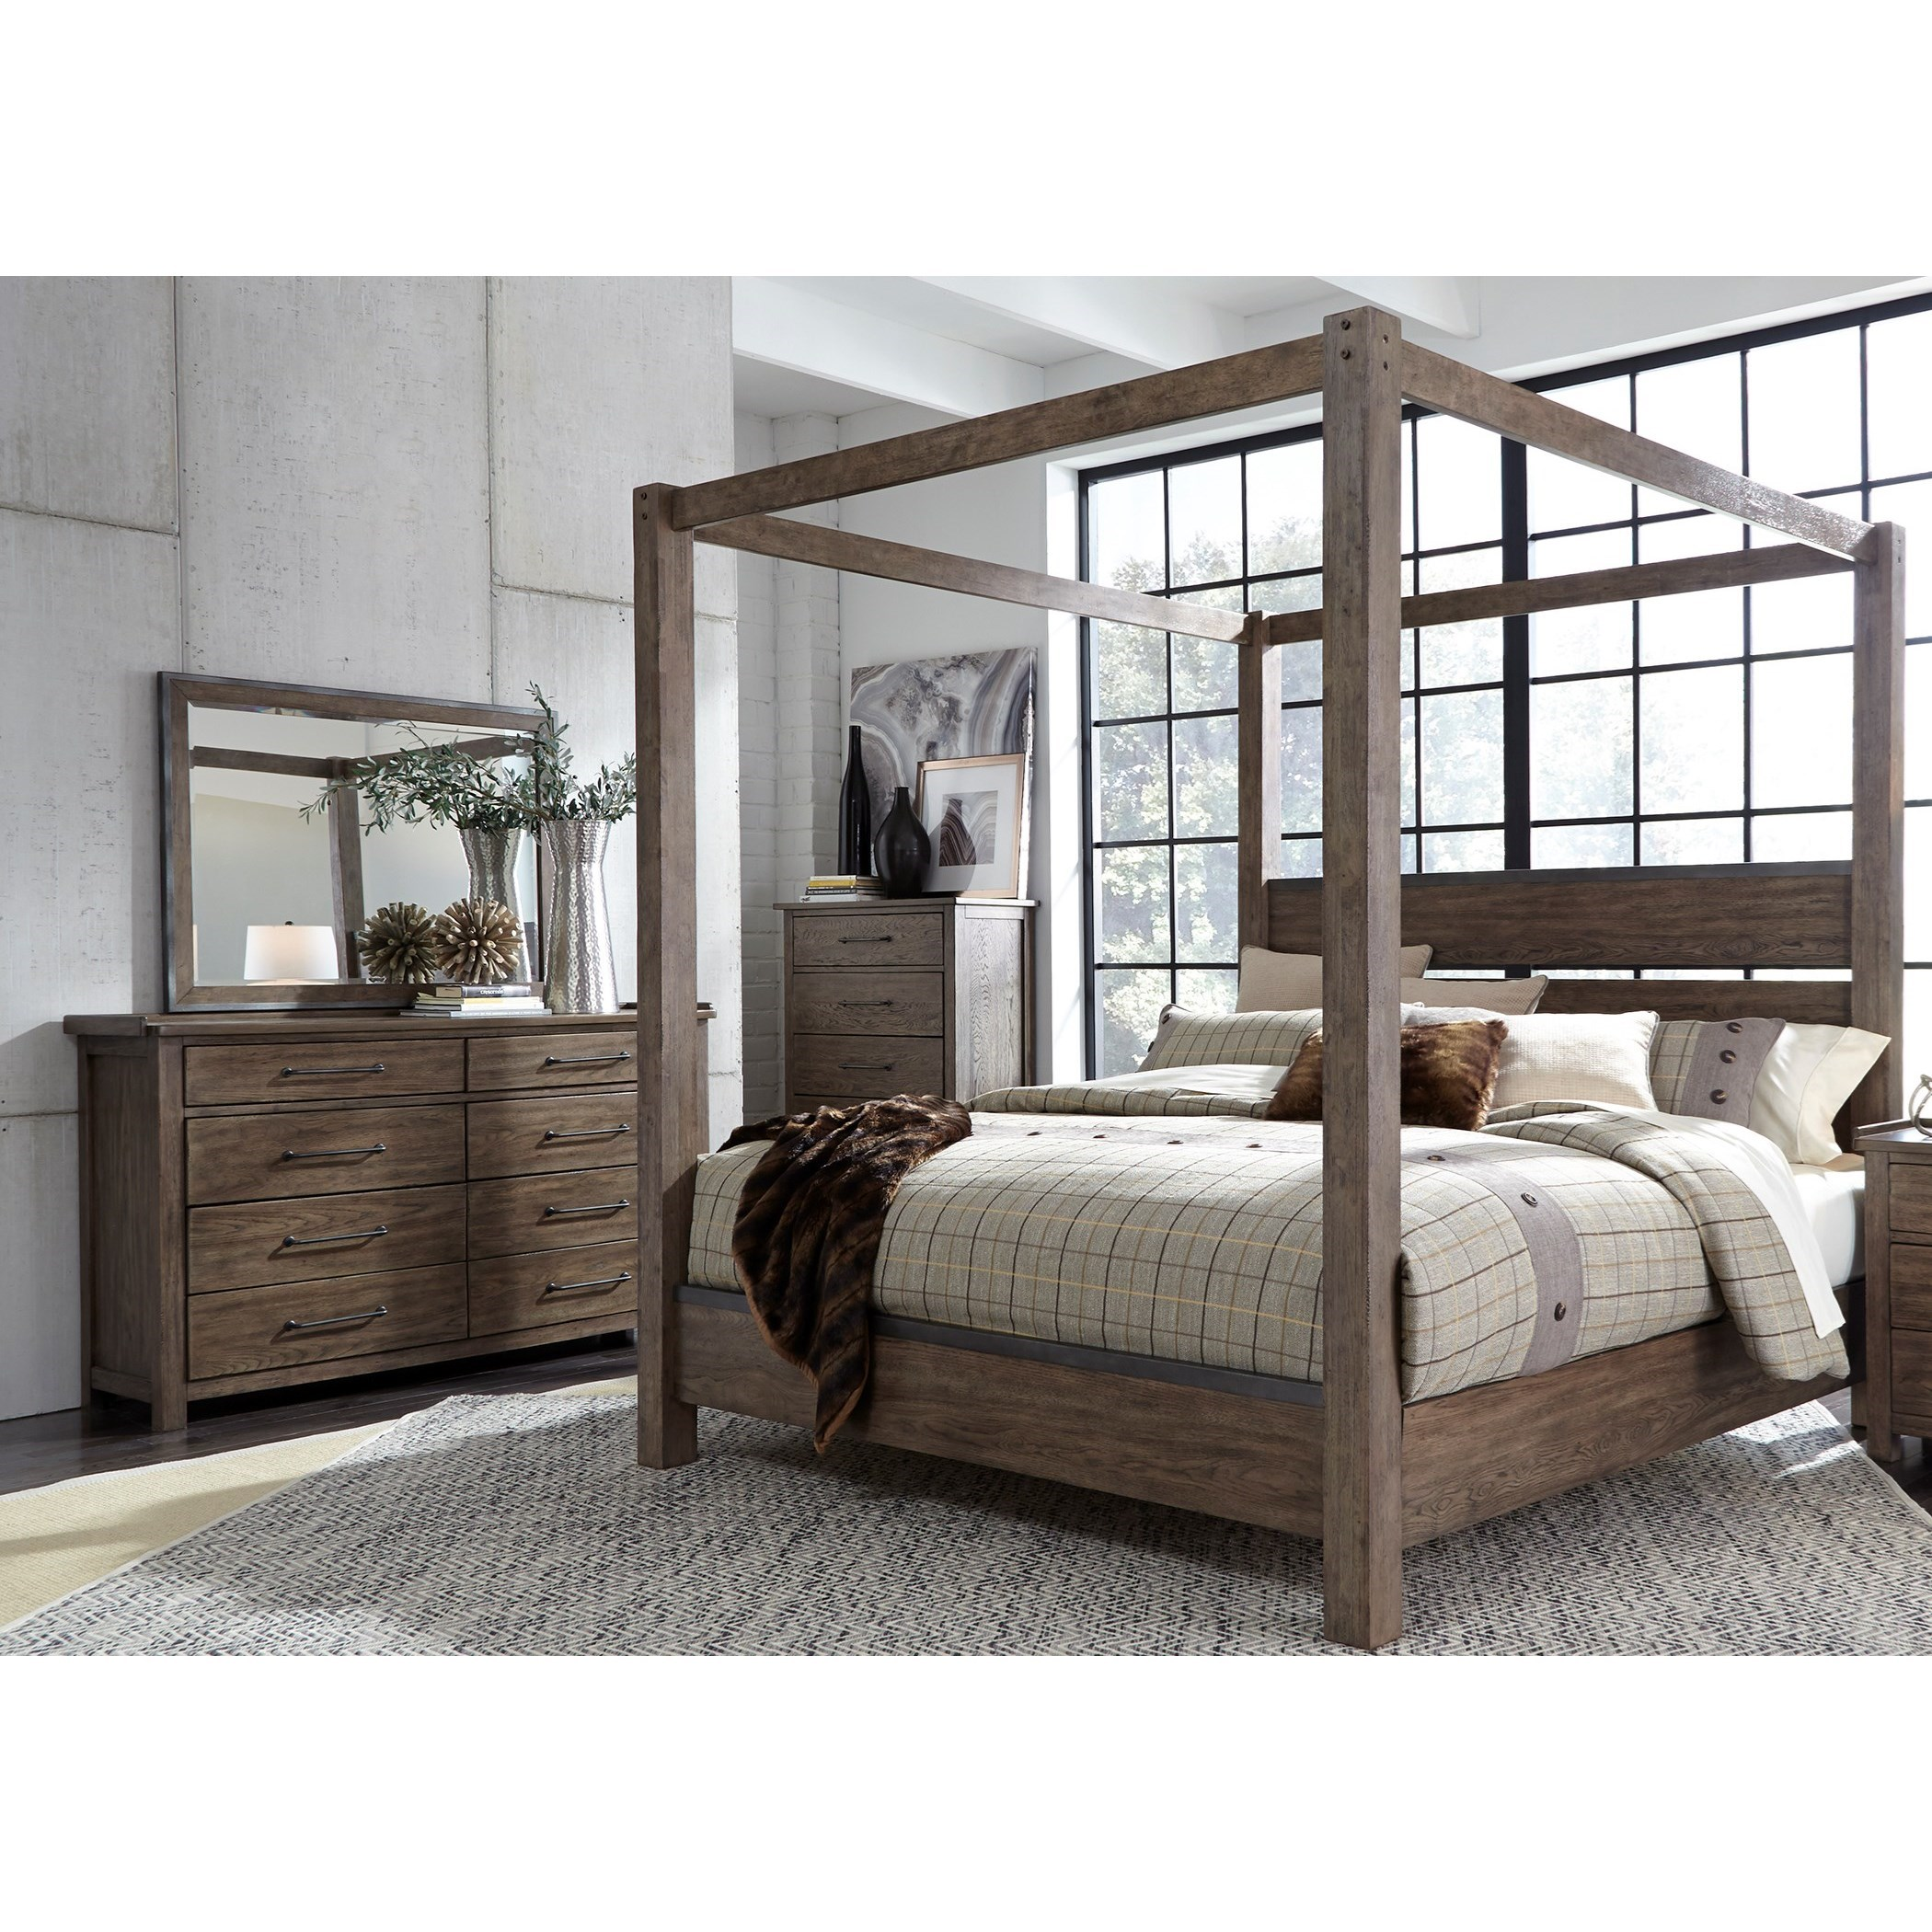 Liberty Furniture Sonoma Road King Bedroom Group - Item Number: 473-BR-KCBDMC